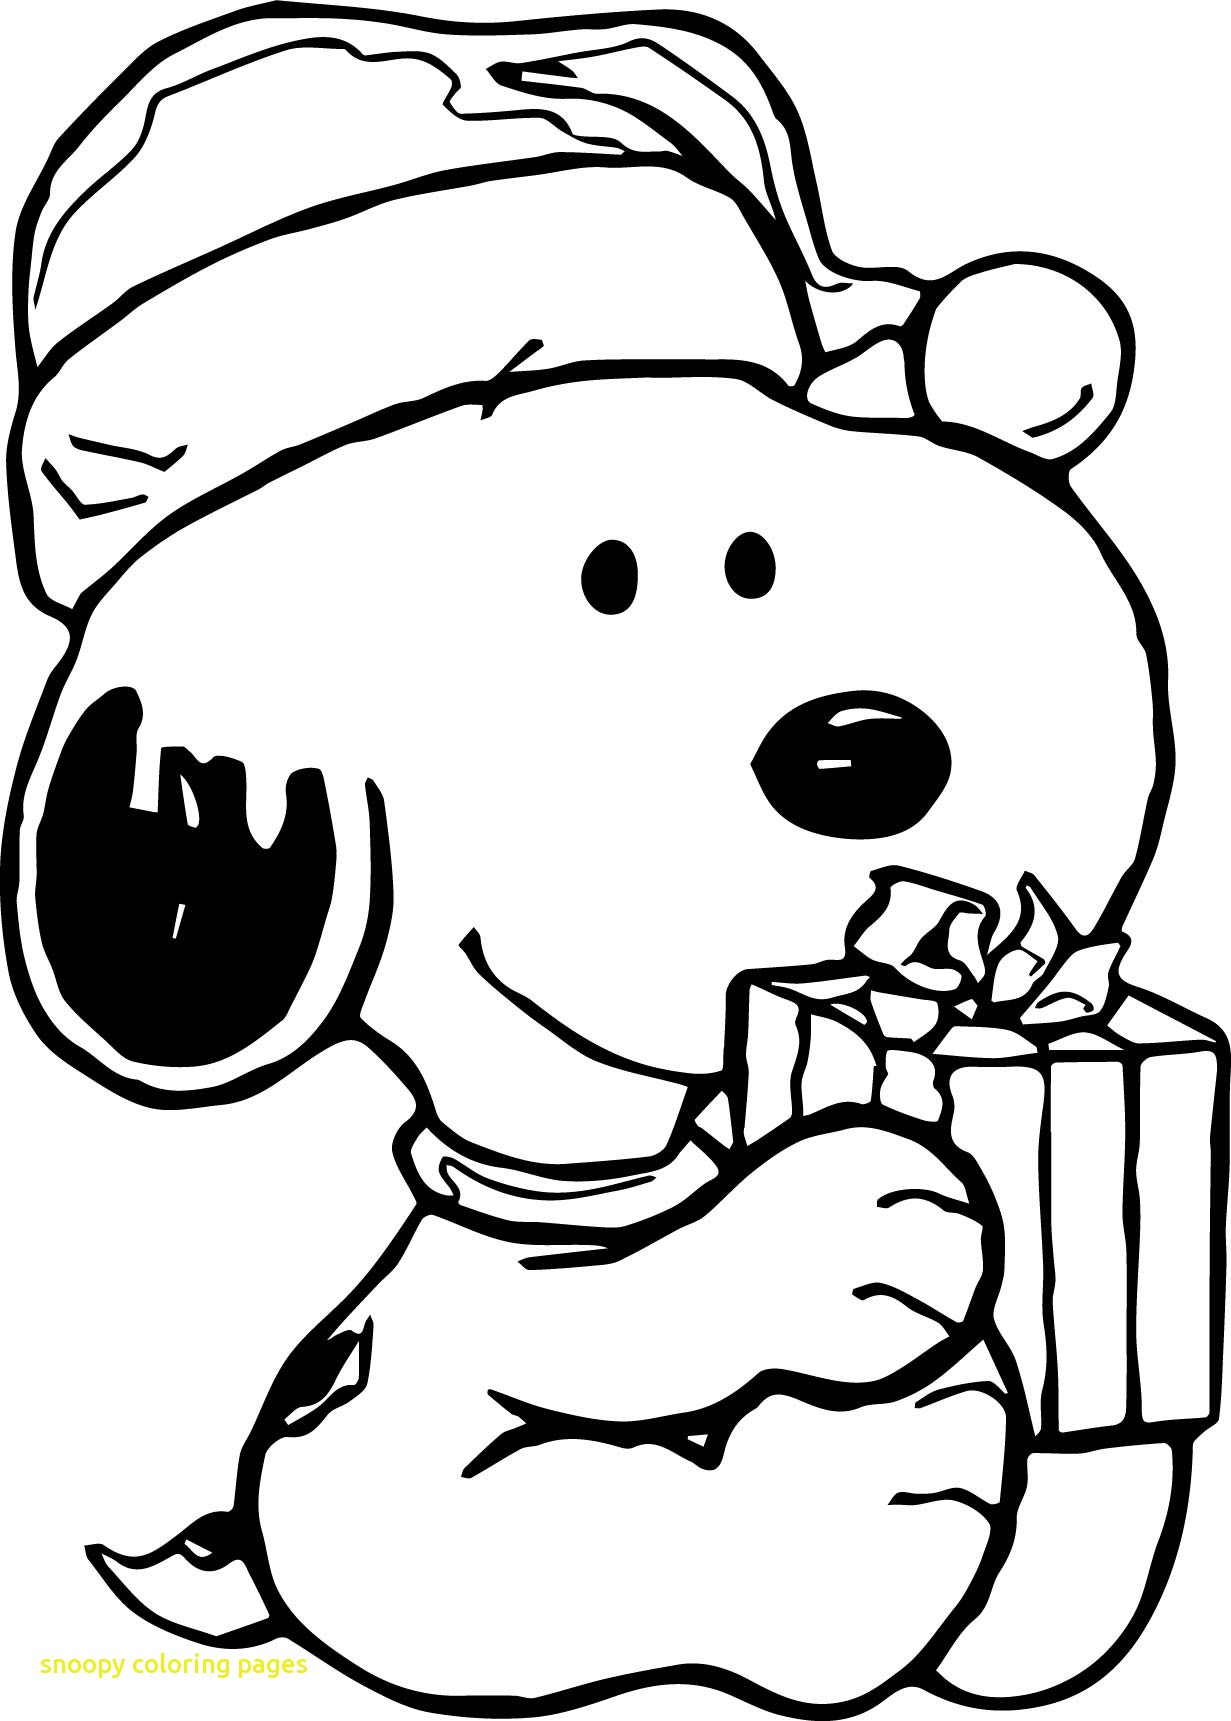 1231x1721 Best Of Snoopy Coloring Pages With Baby Snoopy Christmas Coloring